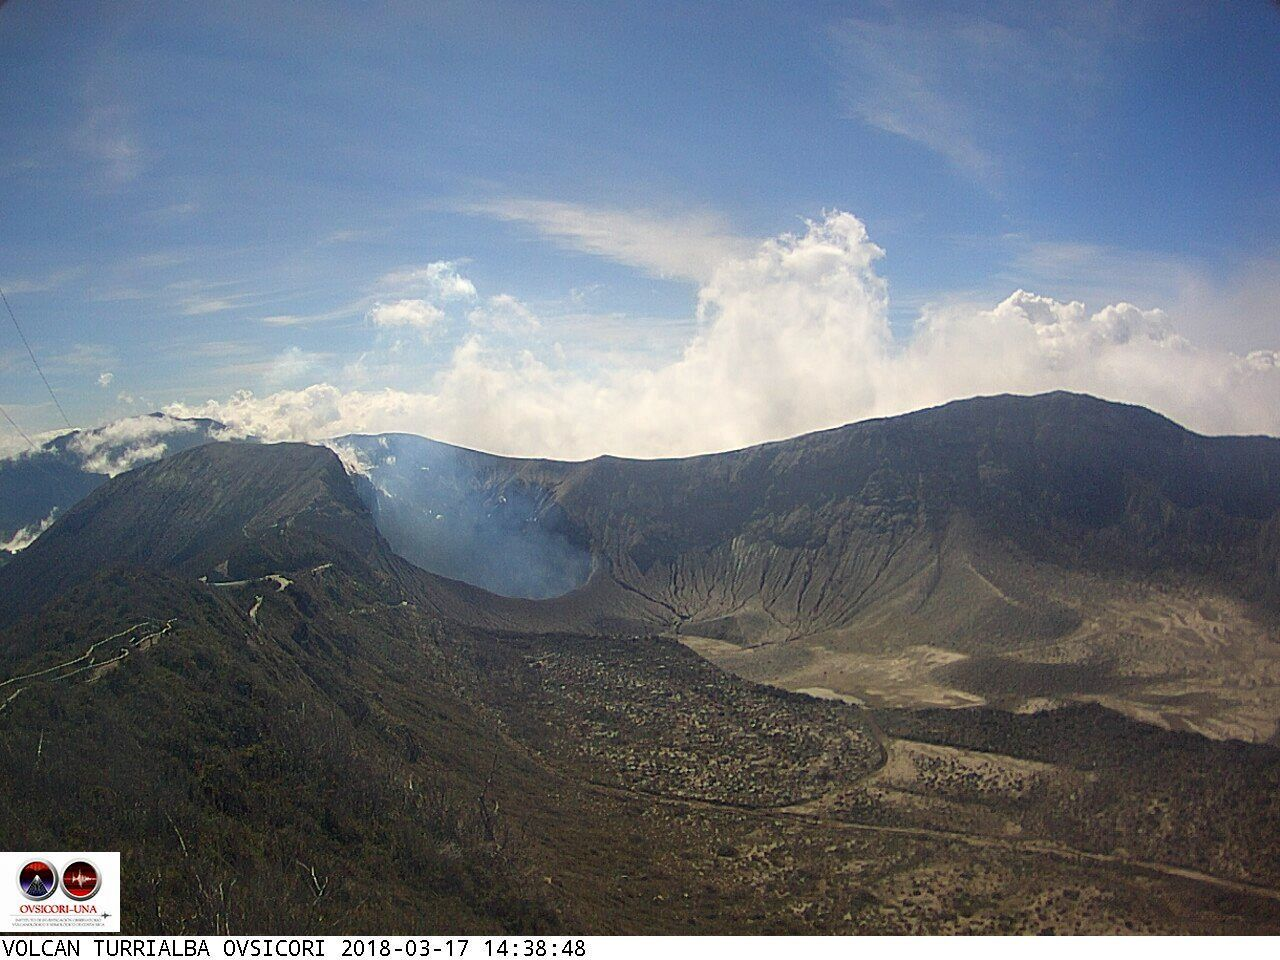 Turrialba - 17.03.2018 / 14:38 - webcam Ovsicori